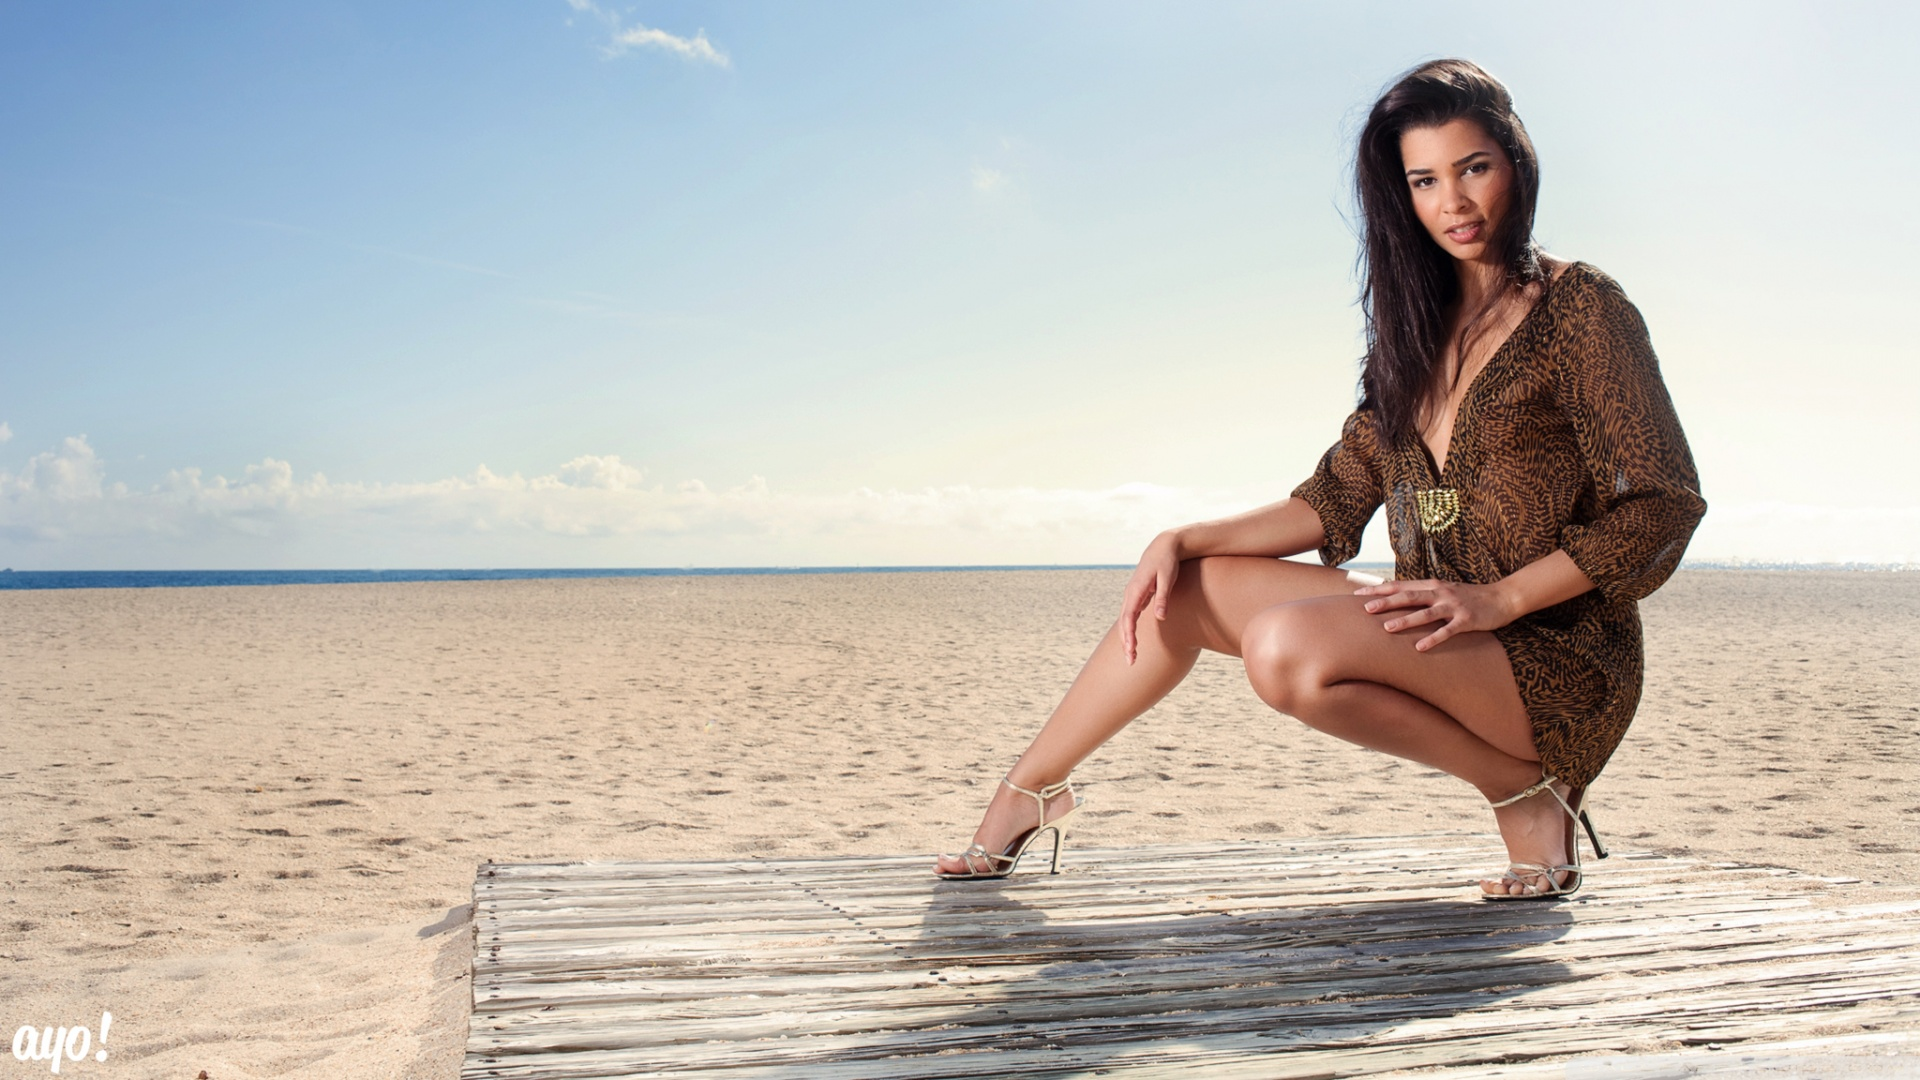 Beach girl top cool hd wallpapers